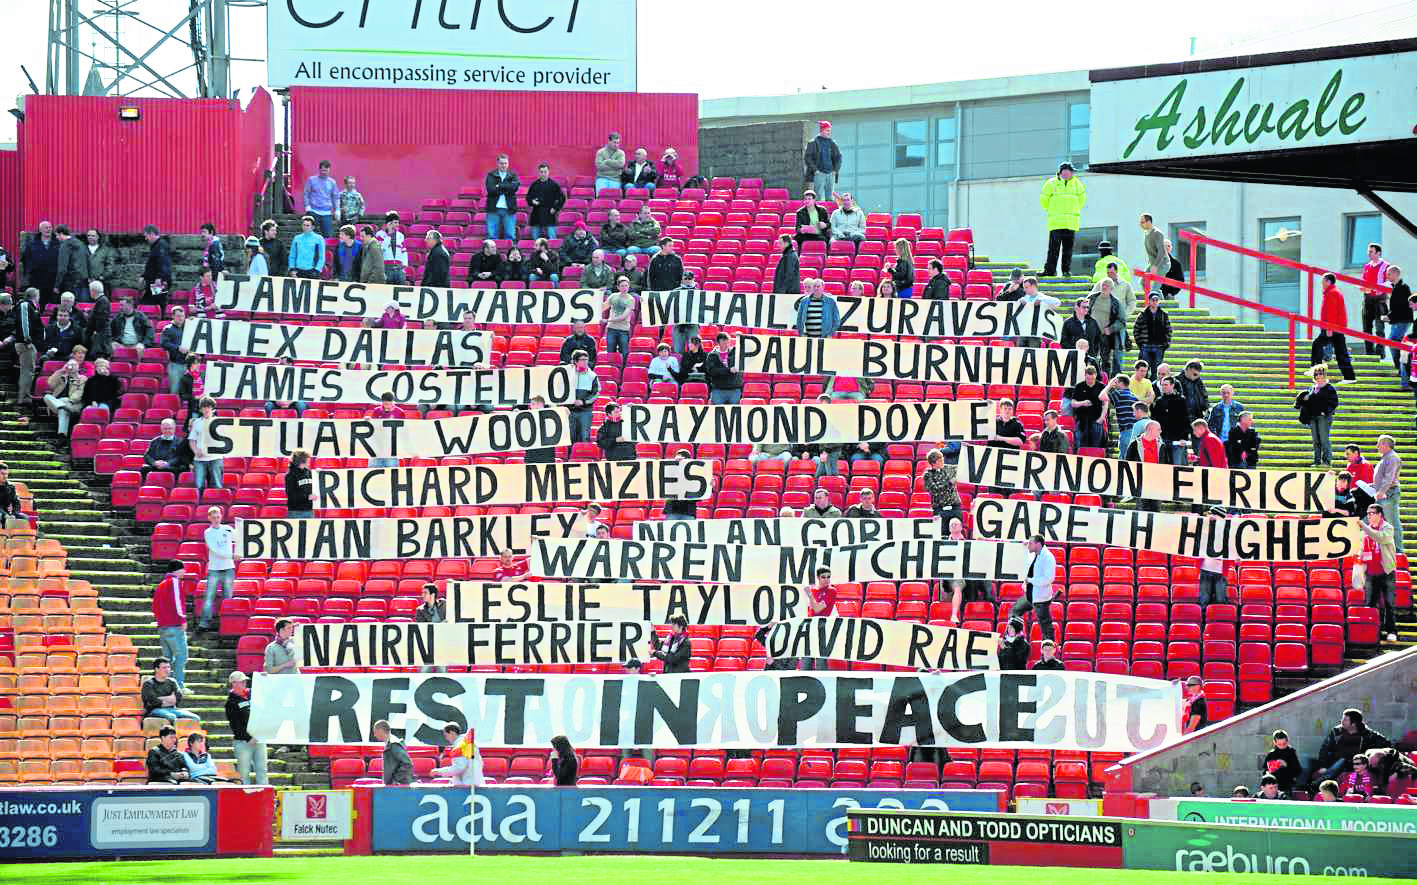 Tribute to the crew and passengers of the Super Puma crash before the game against Inverness Caley Thistle at Pittodrie. Pic by Raymond Besant. 11/04/09